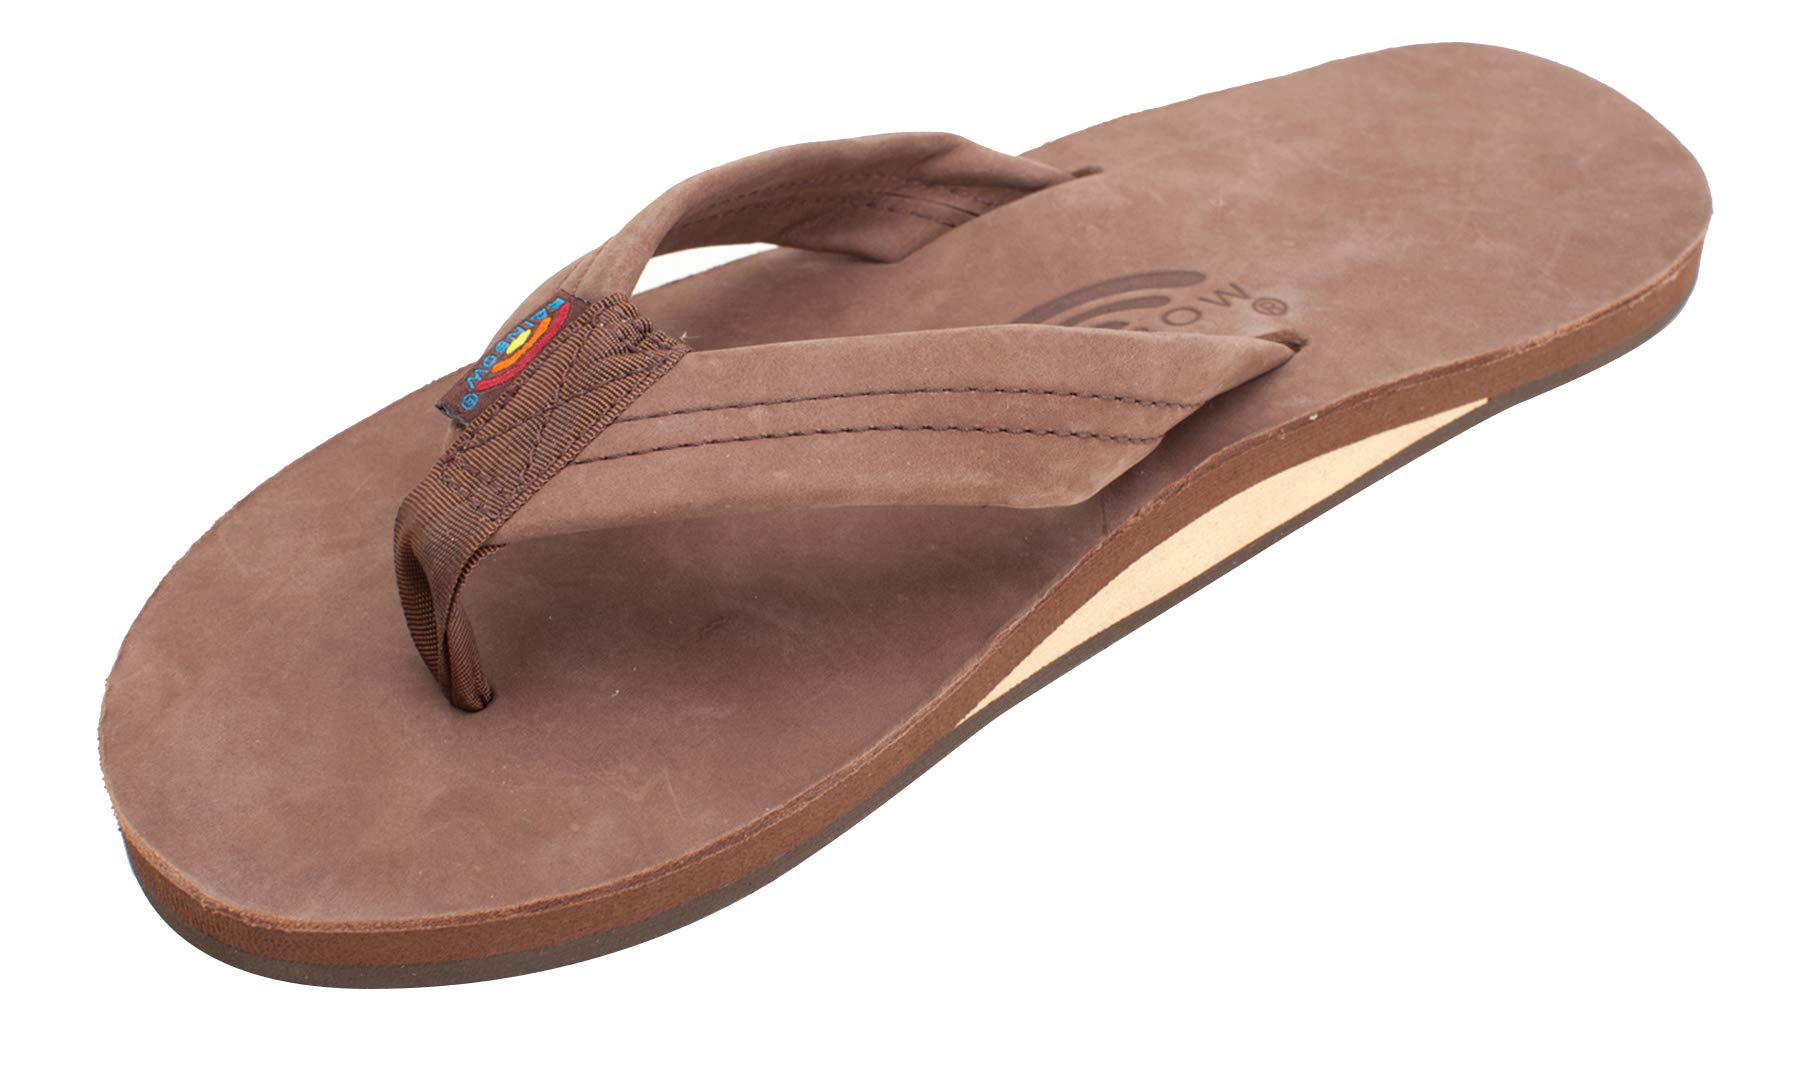 Rainbow Sandals Single Layer Premier Leather Men's Sandal (Expresso) Size 11/12 (XL)